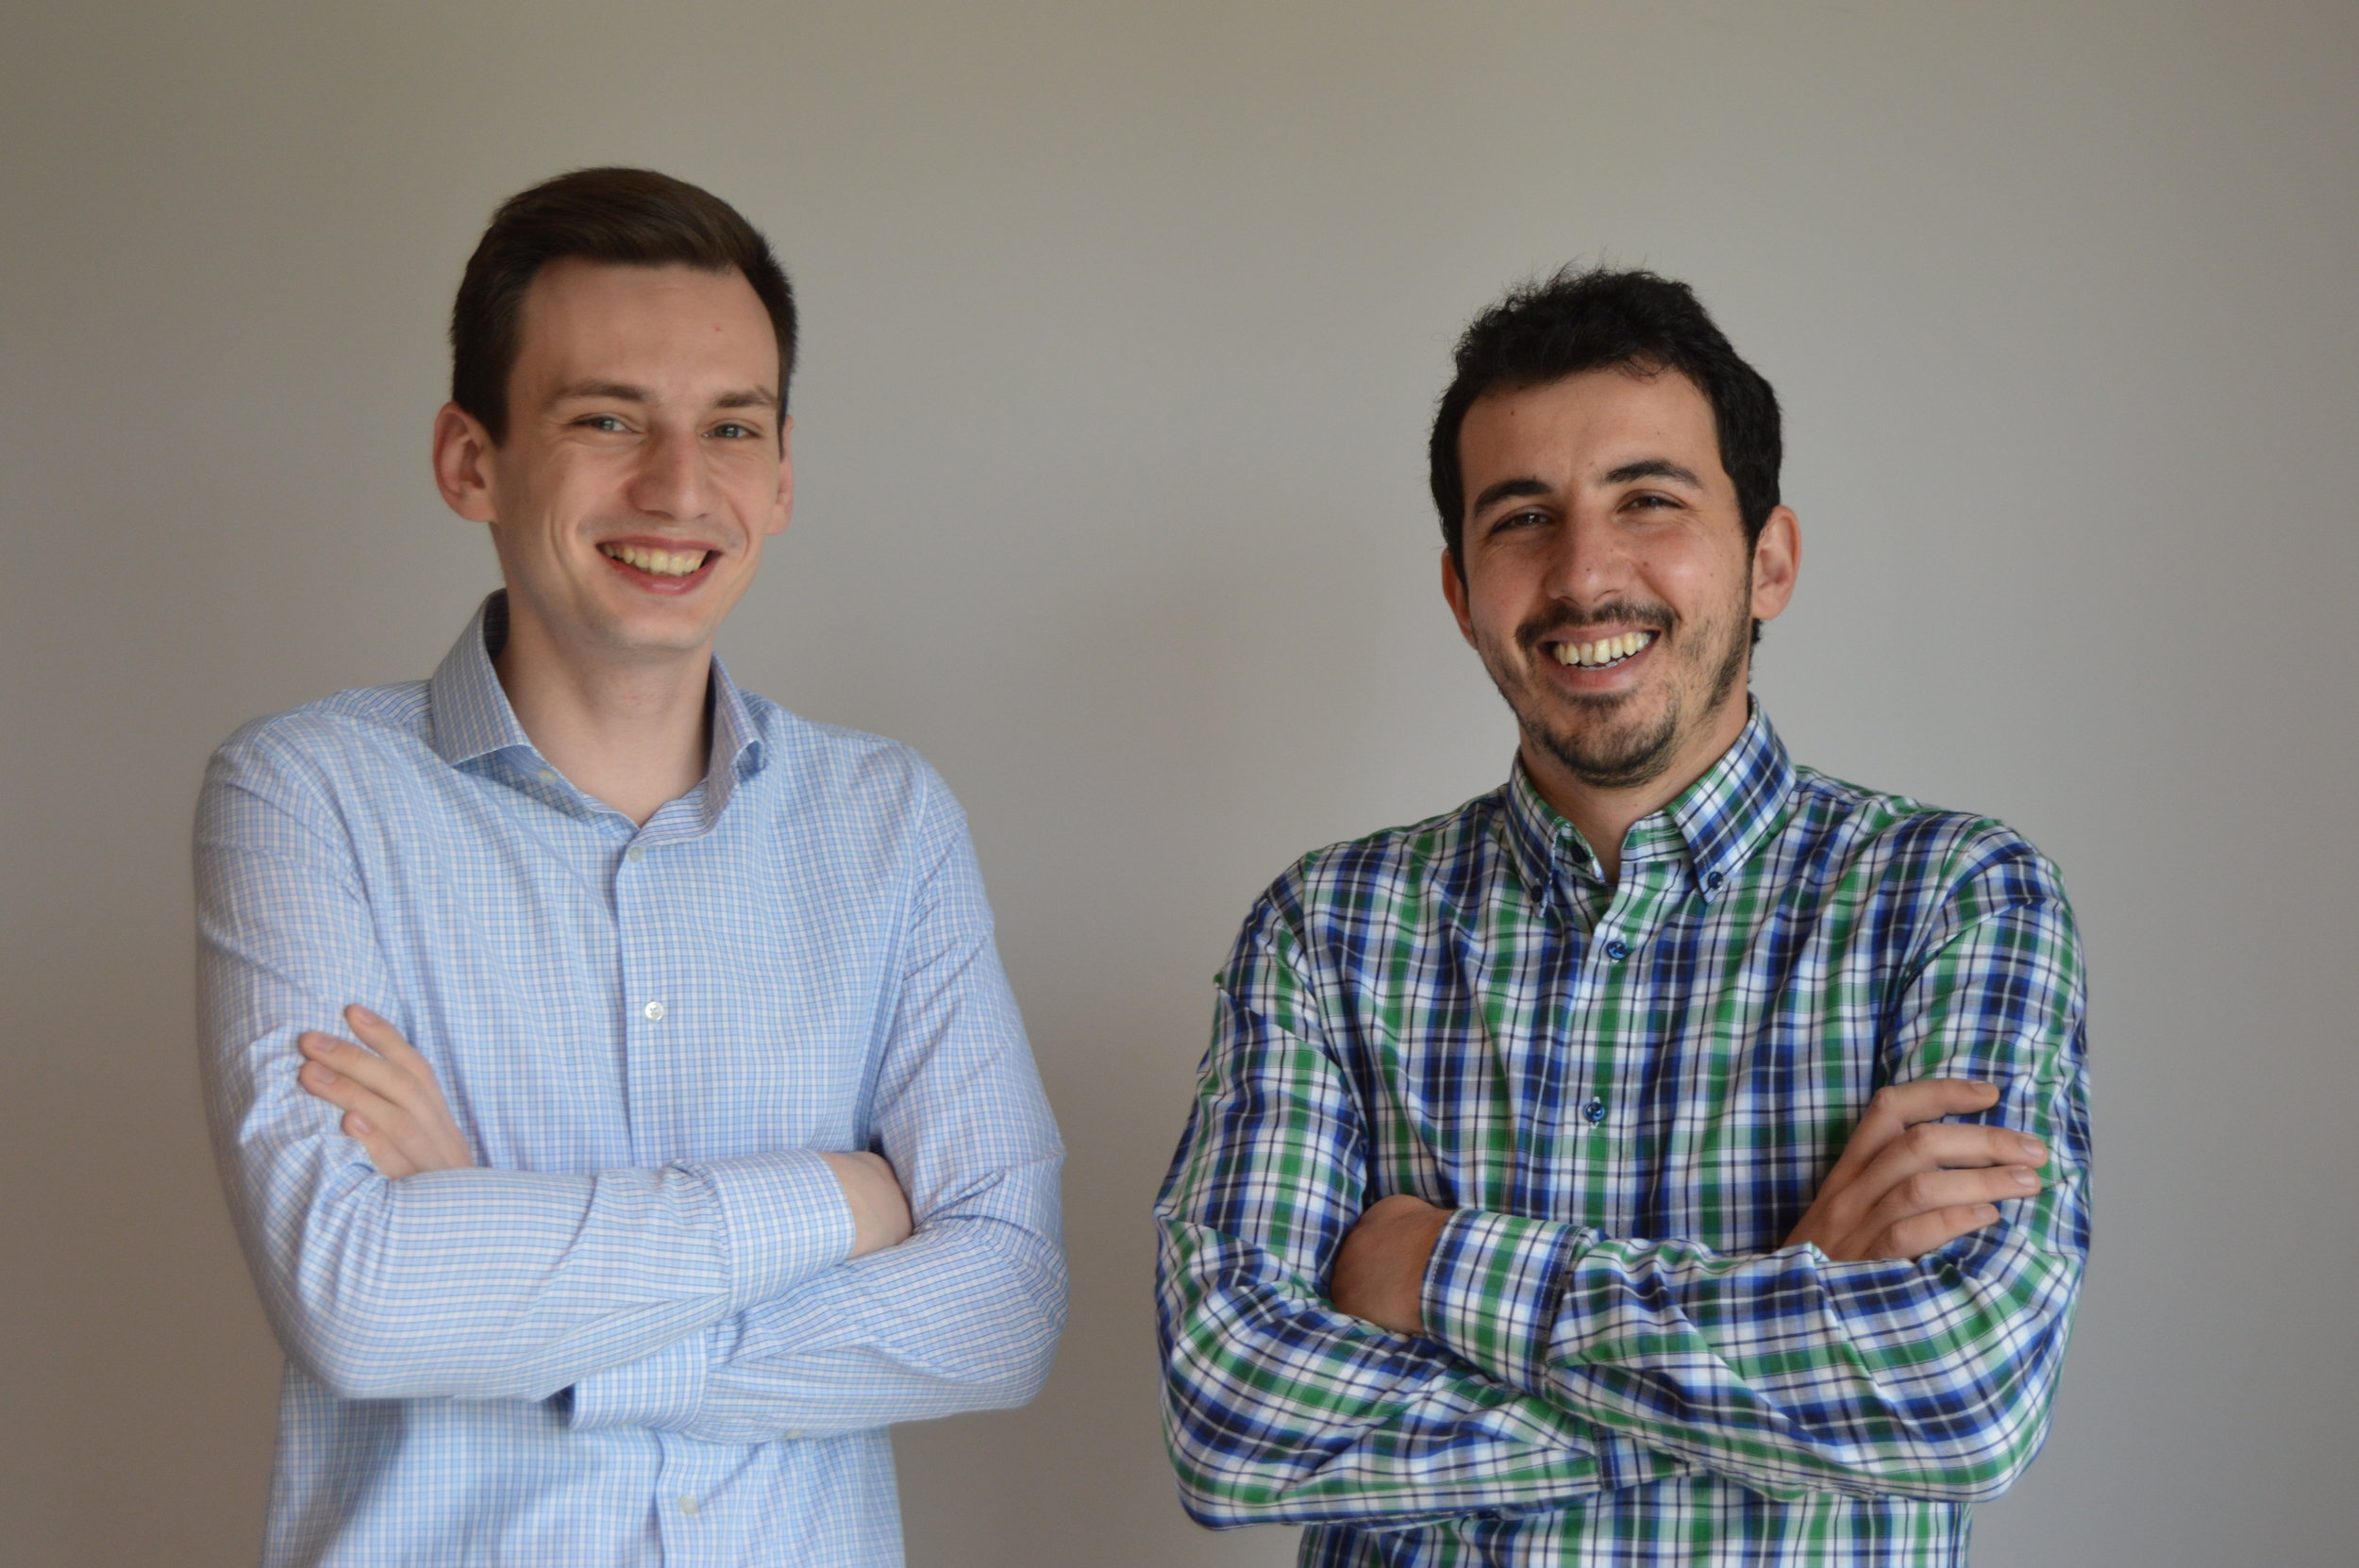 Florin Traila & Paul Druta    LINEO ENGINEERING      our dynamic Engineering Team